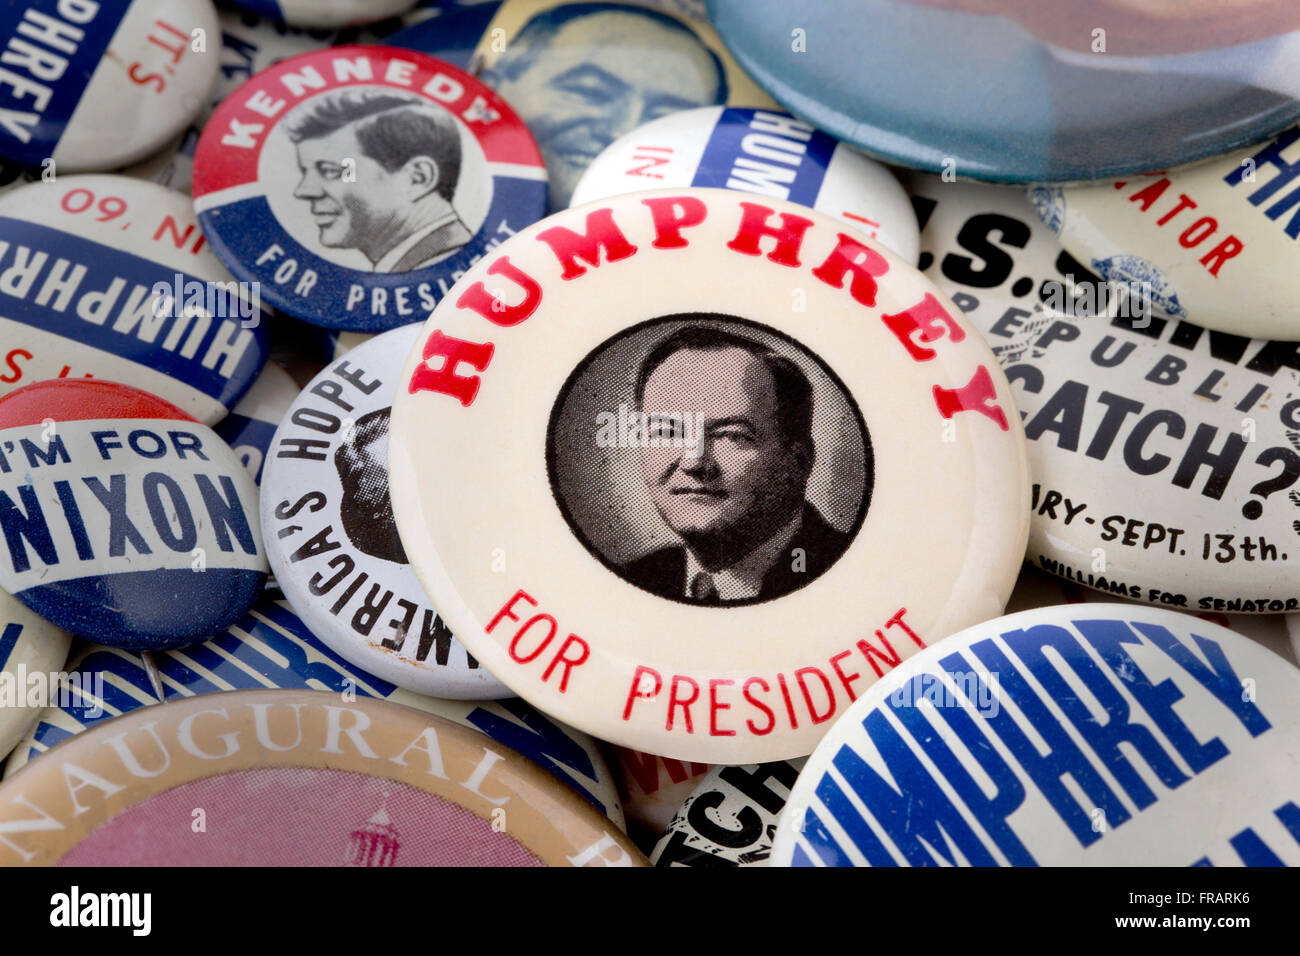 A collection of US political campaign buttons featuring a 1960 Hubert H. Humphrey pin back button badge - Stock Image